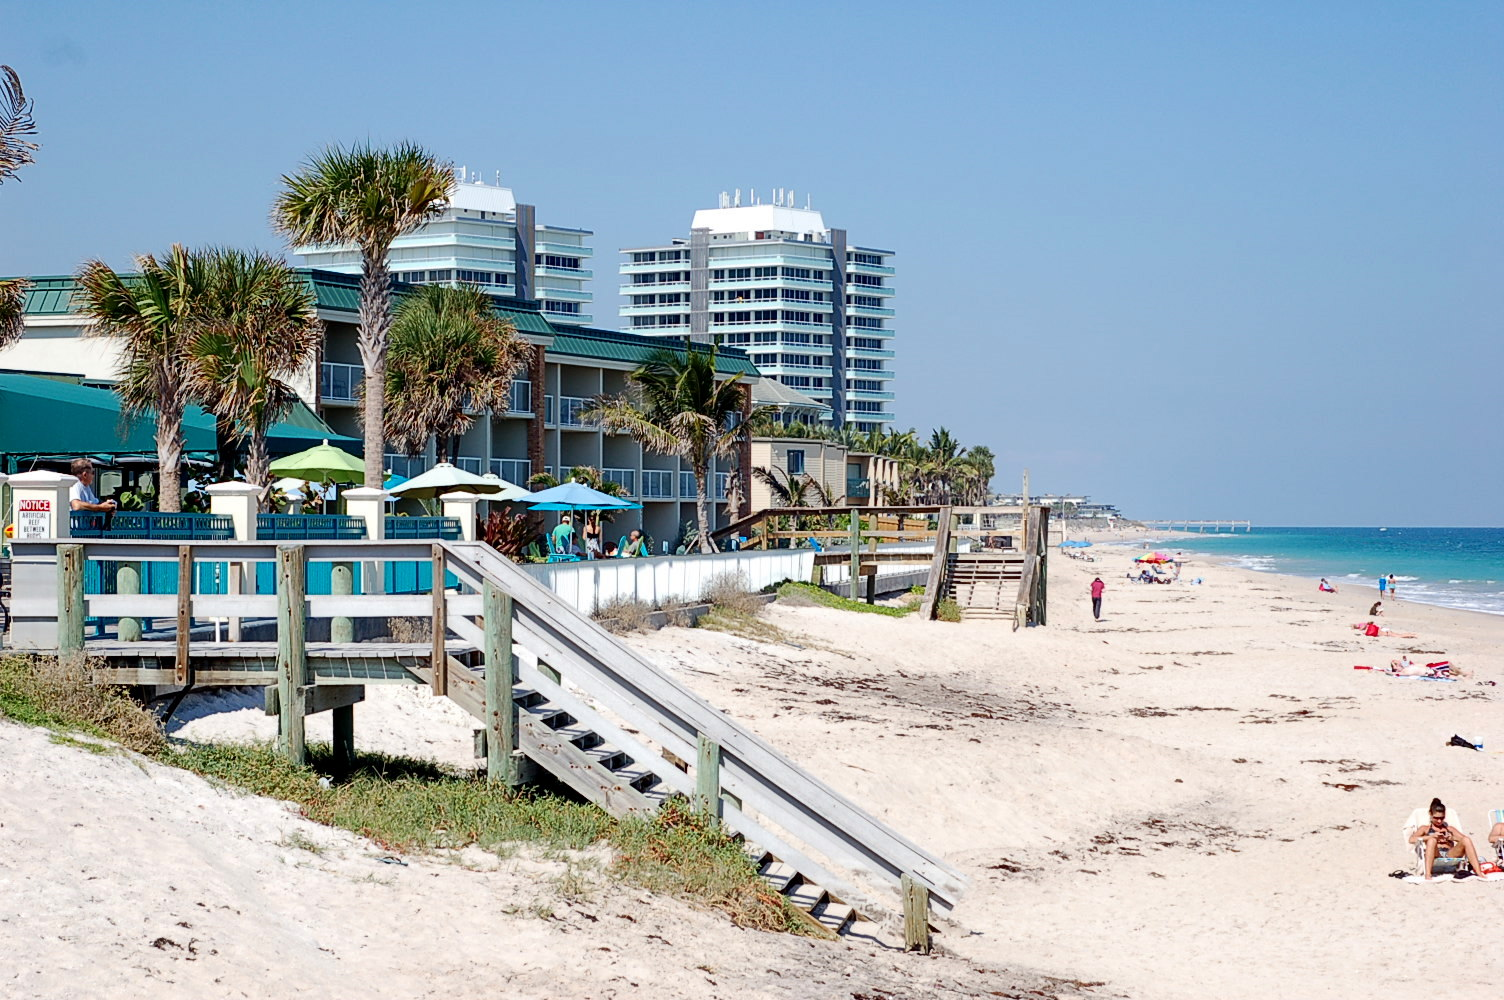 Cape canaveral beach house best places to live in cape for Best places to live in florida by the beach